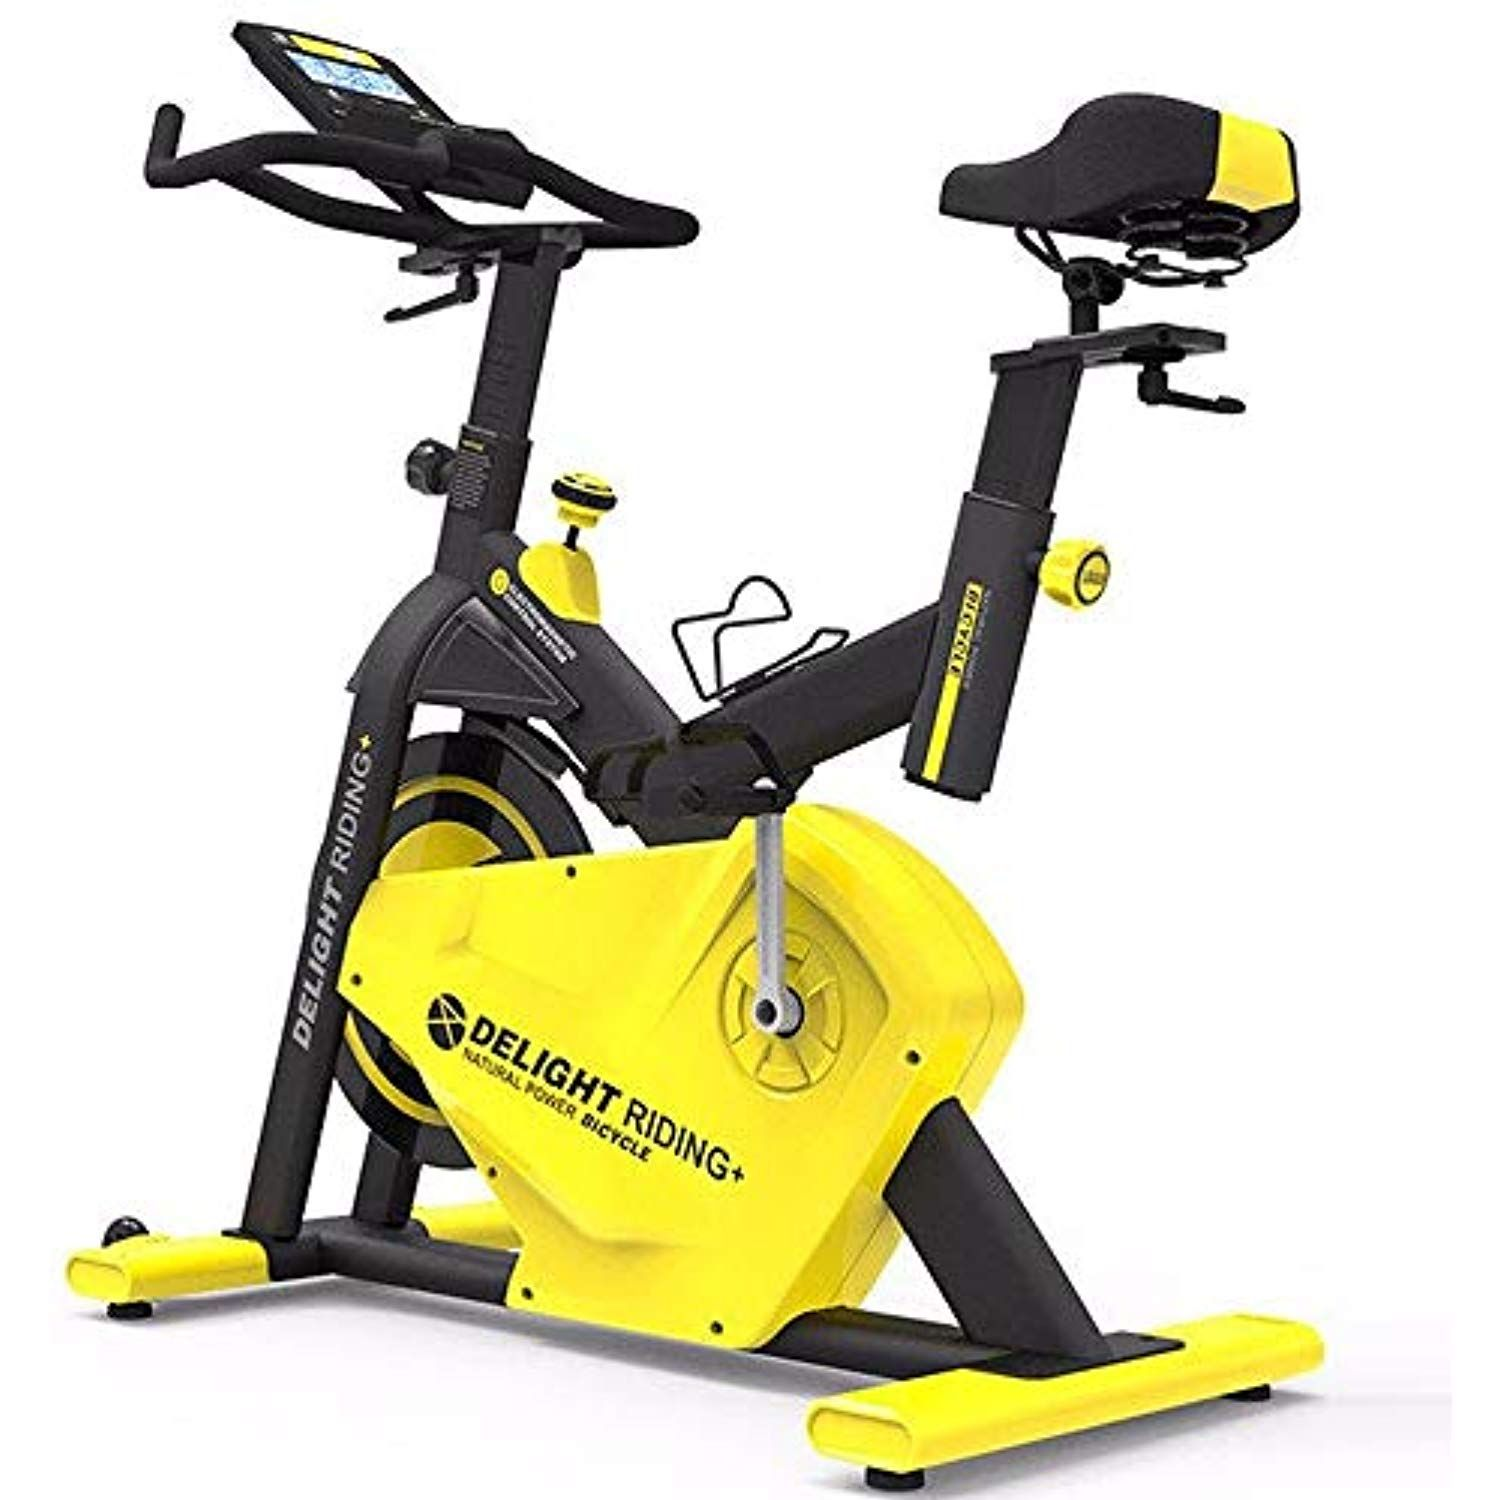 Zja Fitness Equipment Home Exercise Bike Self Generating Ultra Quiet Magnetic Control Smart Gym Sports Fitn Biking Workout Home Exercise Bike Indoor Bicycles